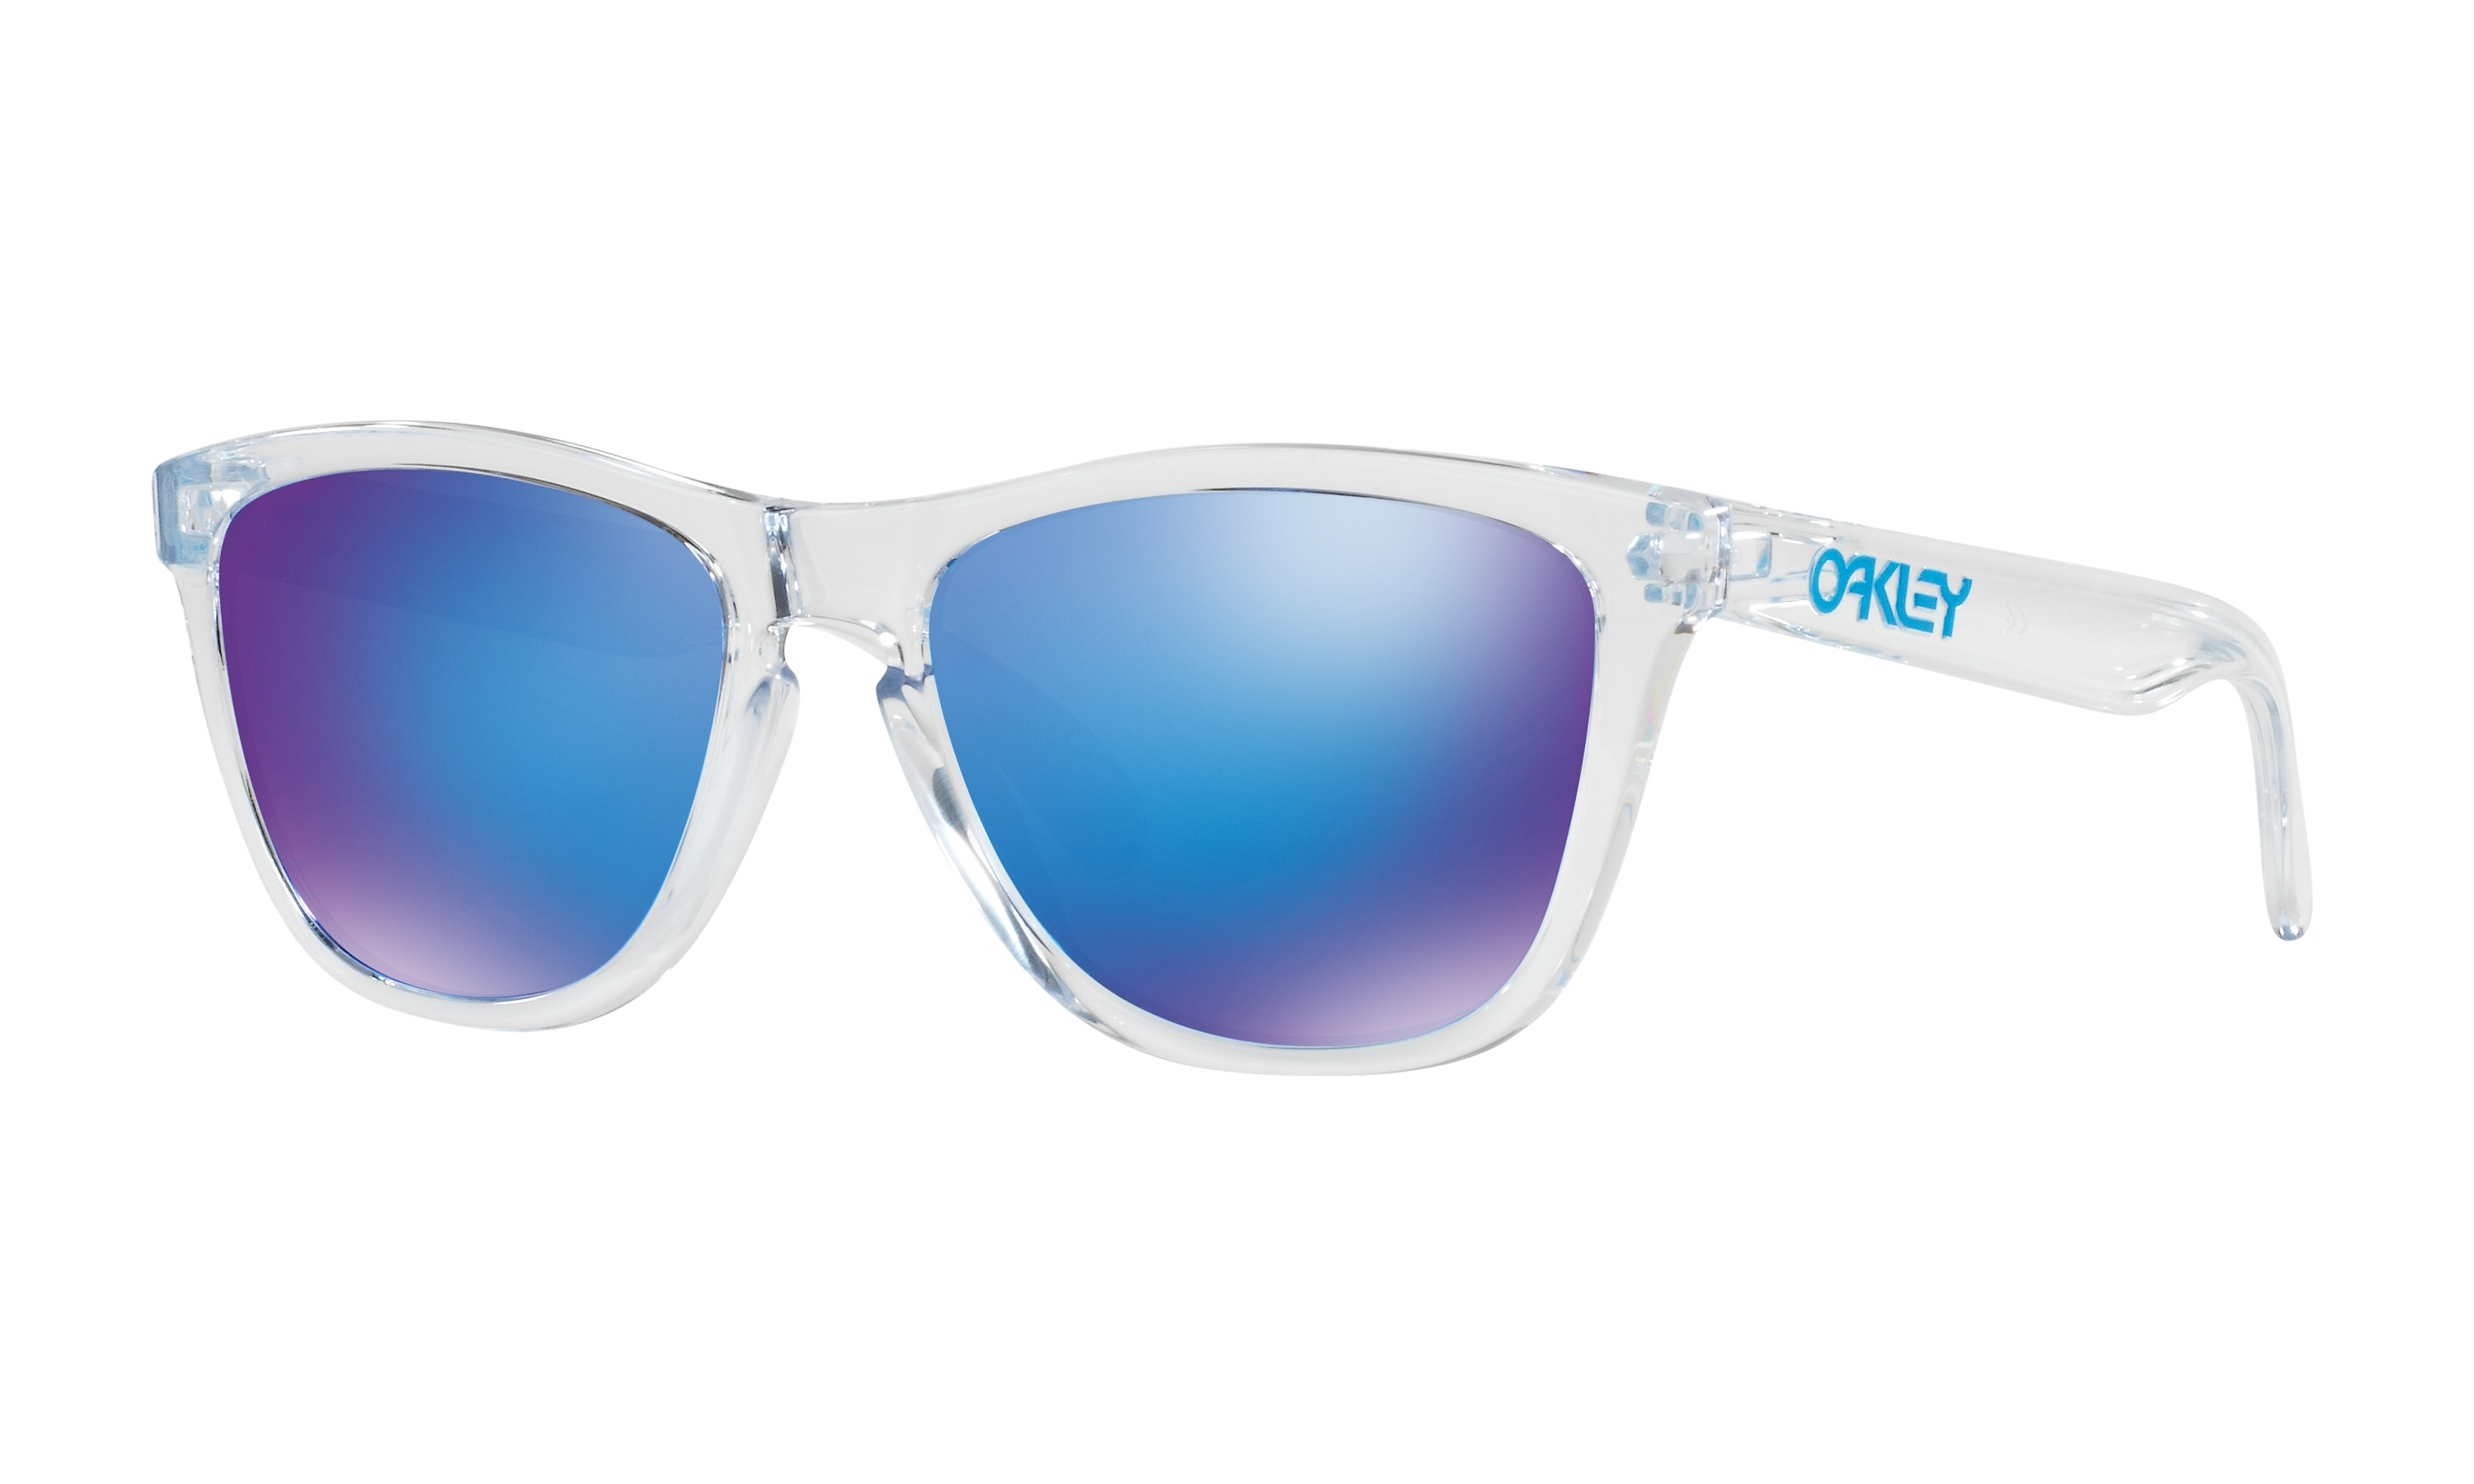 d709c465fbb9c OAKLEY  FROGSKINS CRYSTAL COLLECTION - Perris occhiali e lenti a ...